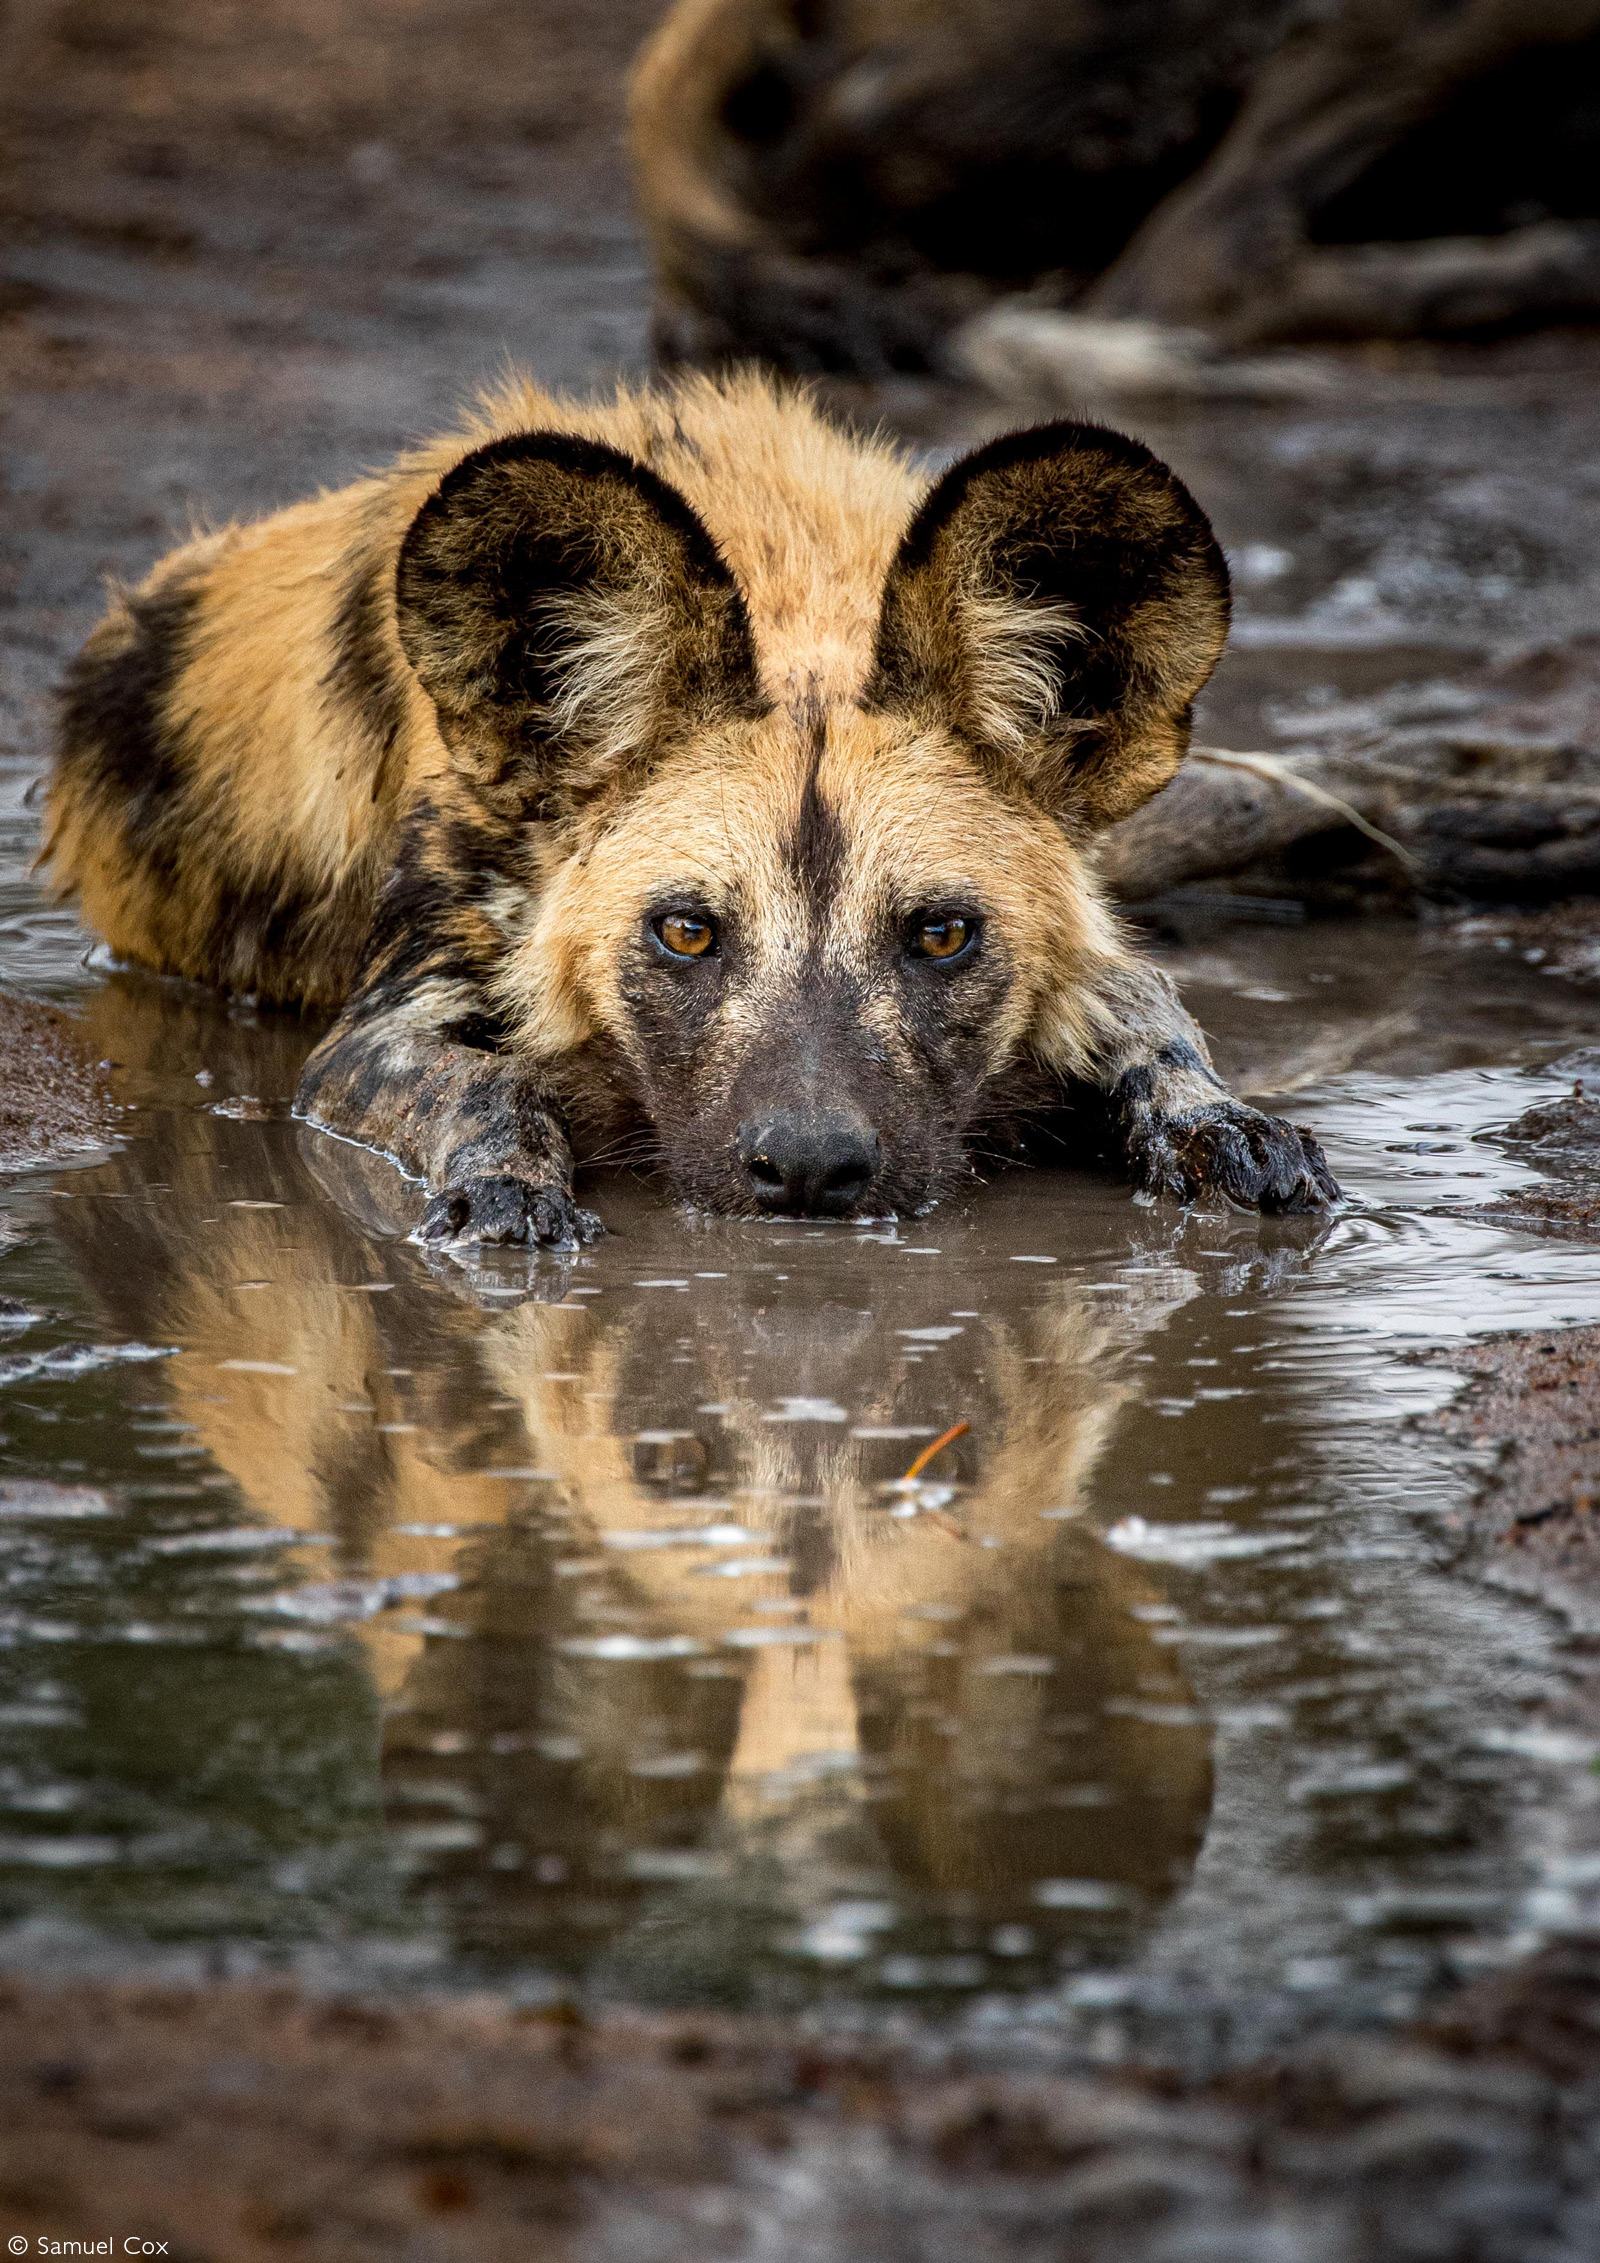 A painted wolf (African wild dog) takes a short break from running in the harsh summer heat, and takes a dip in a muddy puddle to cool down. A moment of brief tranquillity before jumping back up to join the nomadic pack. Klaserie Private Nature Reserve, South Africa © Samuel Cox